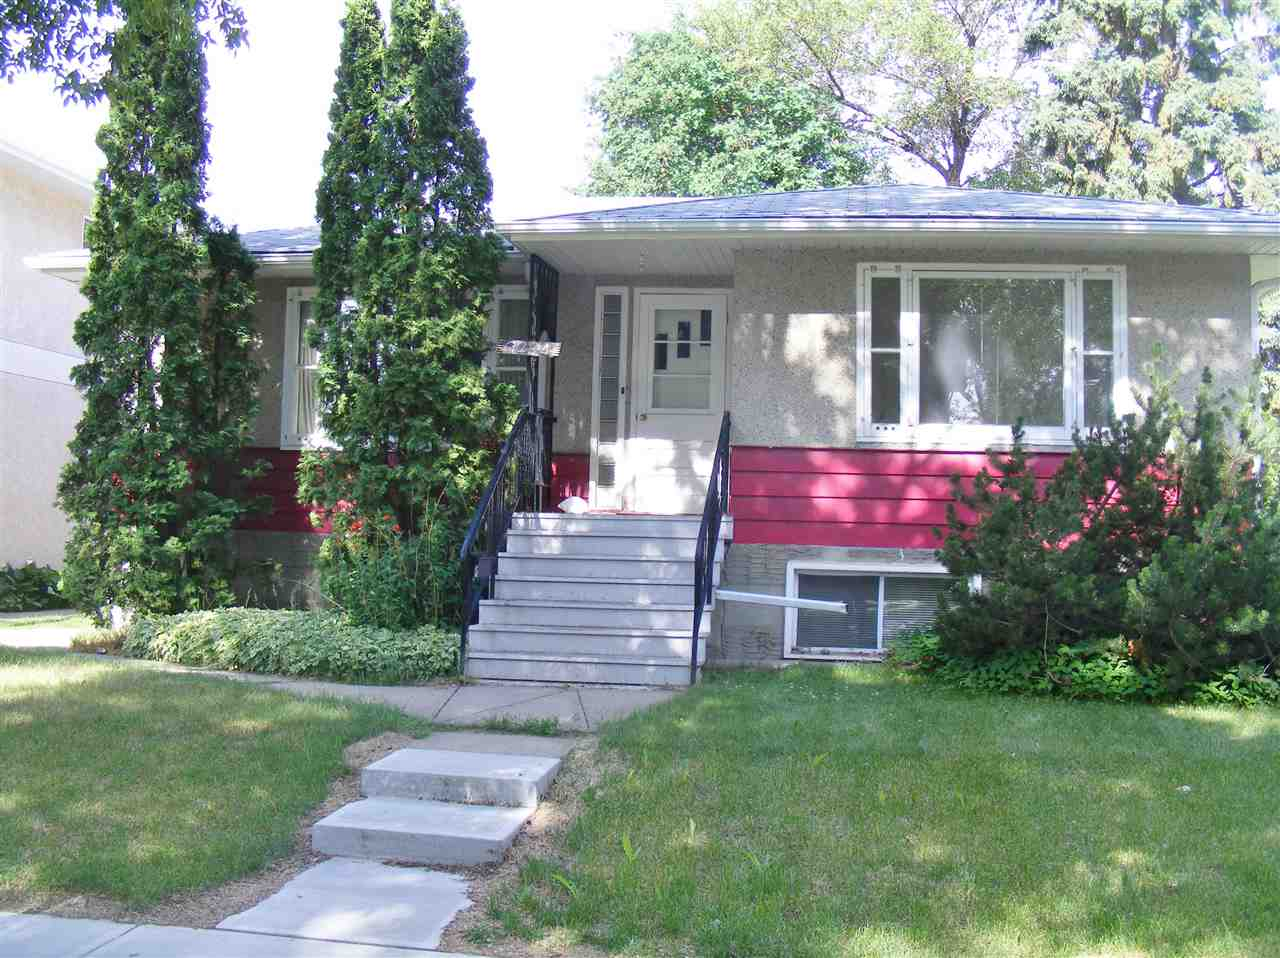 Main Photo: 9234 92 Street in Edmonton: Zone 18 House for sale : MLS®# E4119453